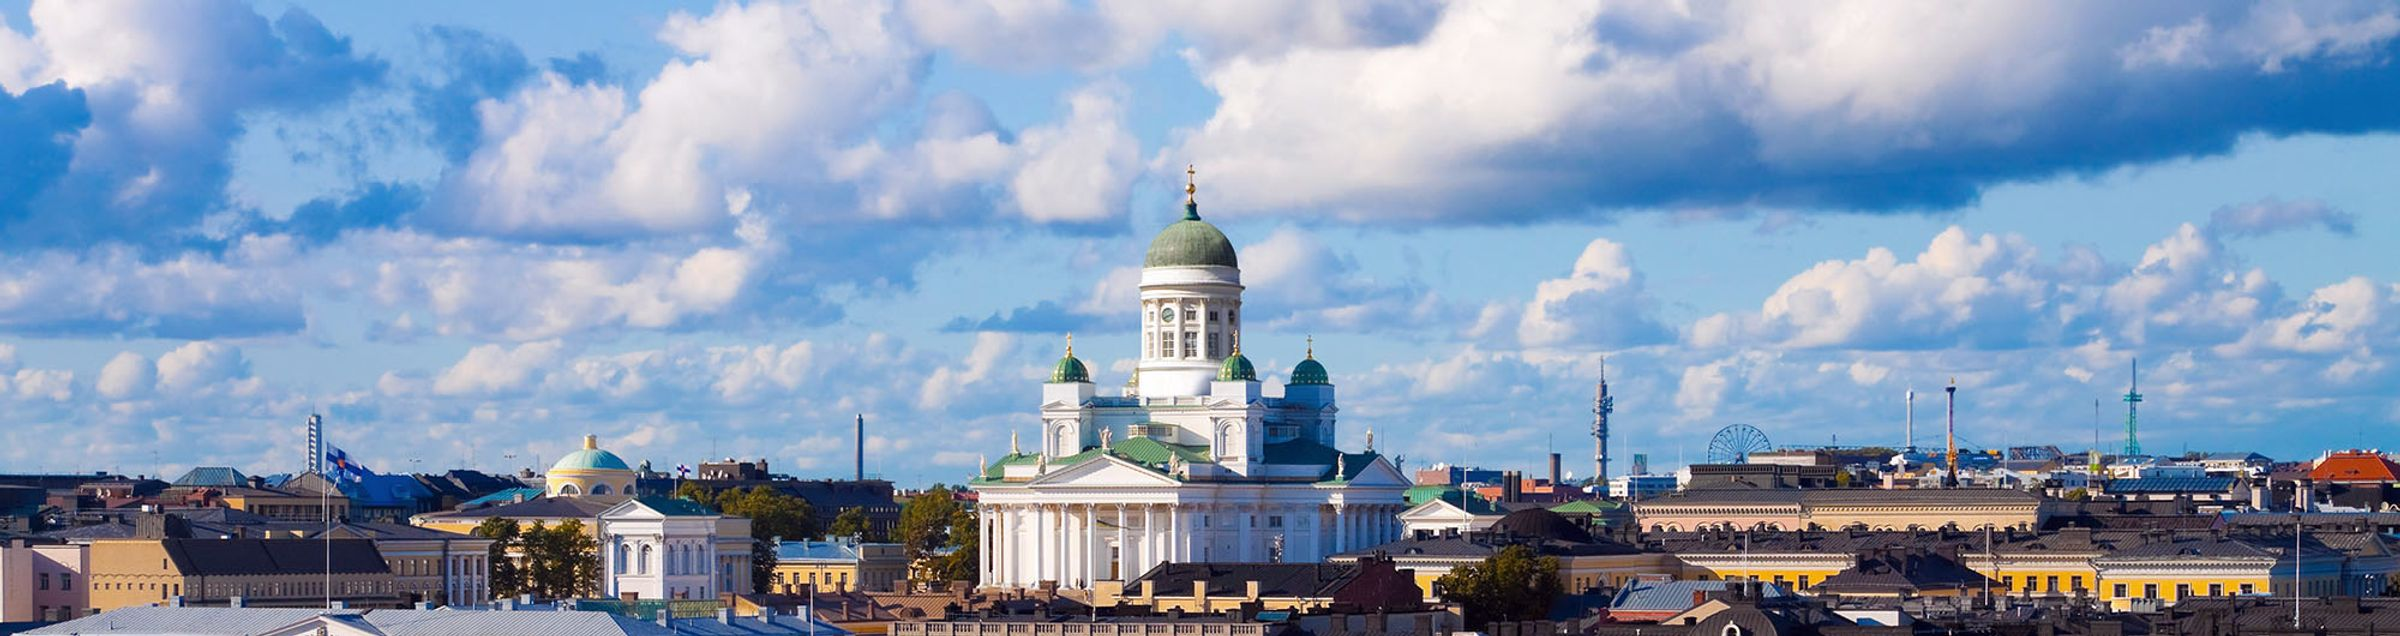 Hotels deals in helsinki from 112 night for 2019 for Rivoli jardin helsinki